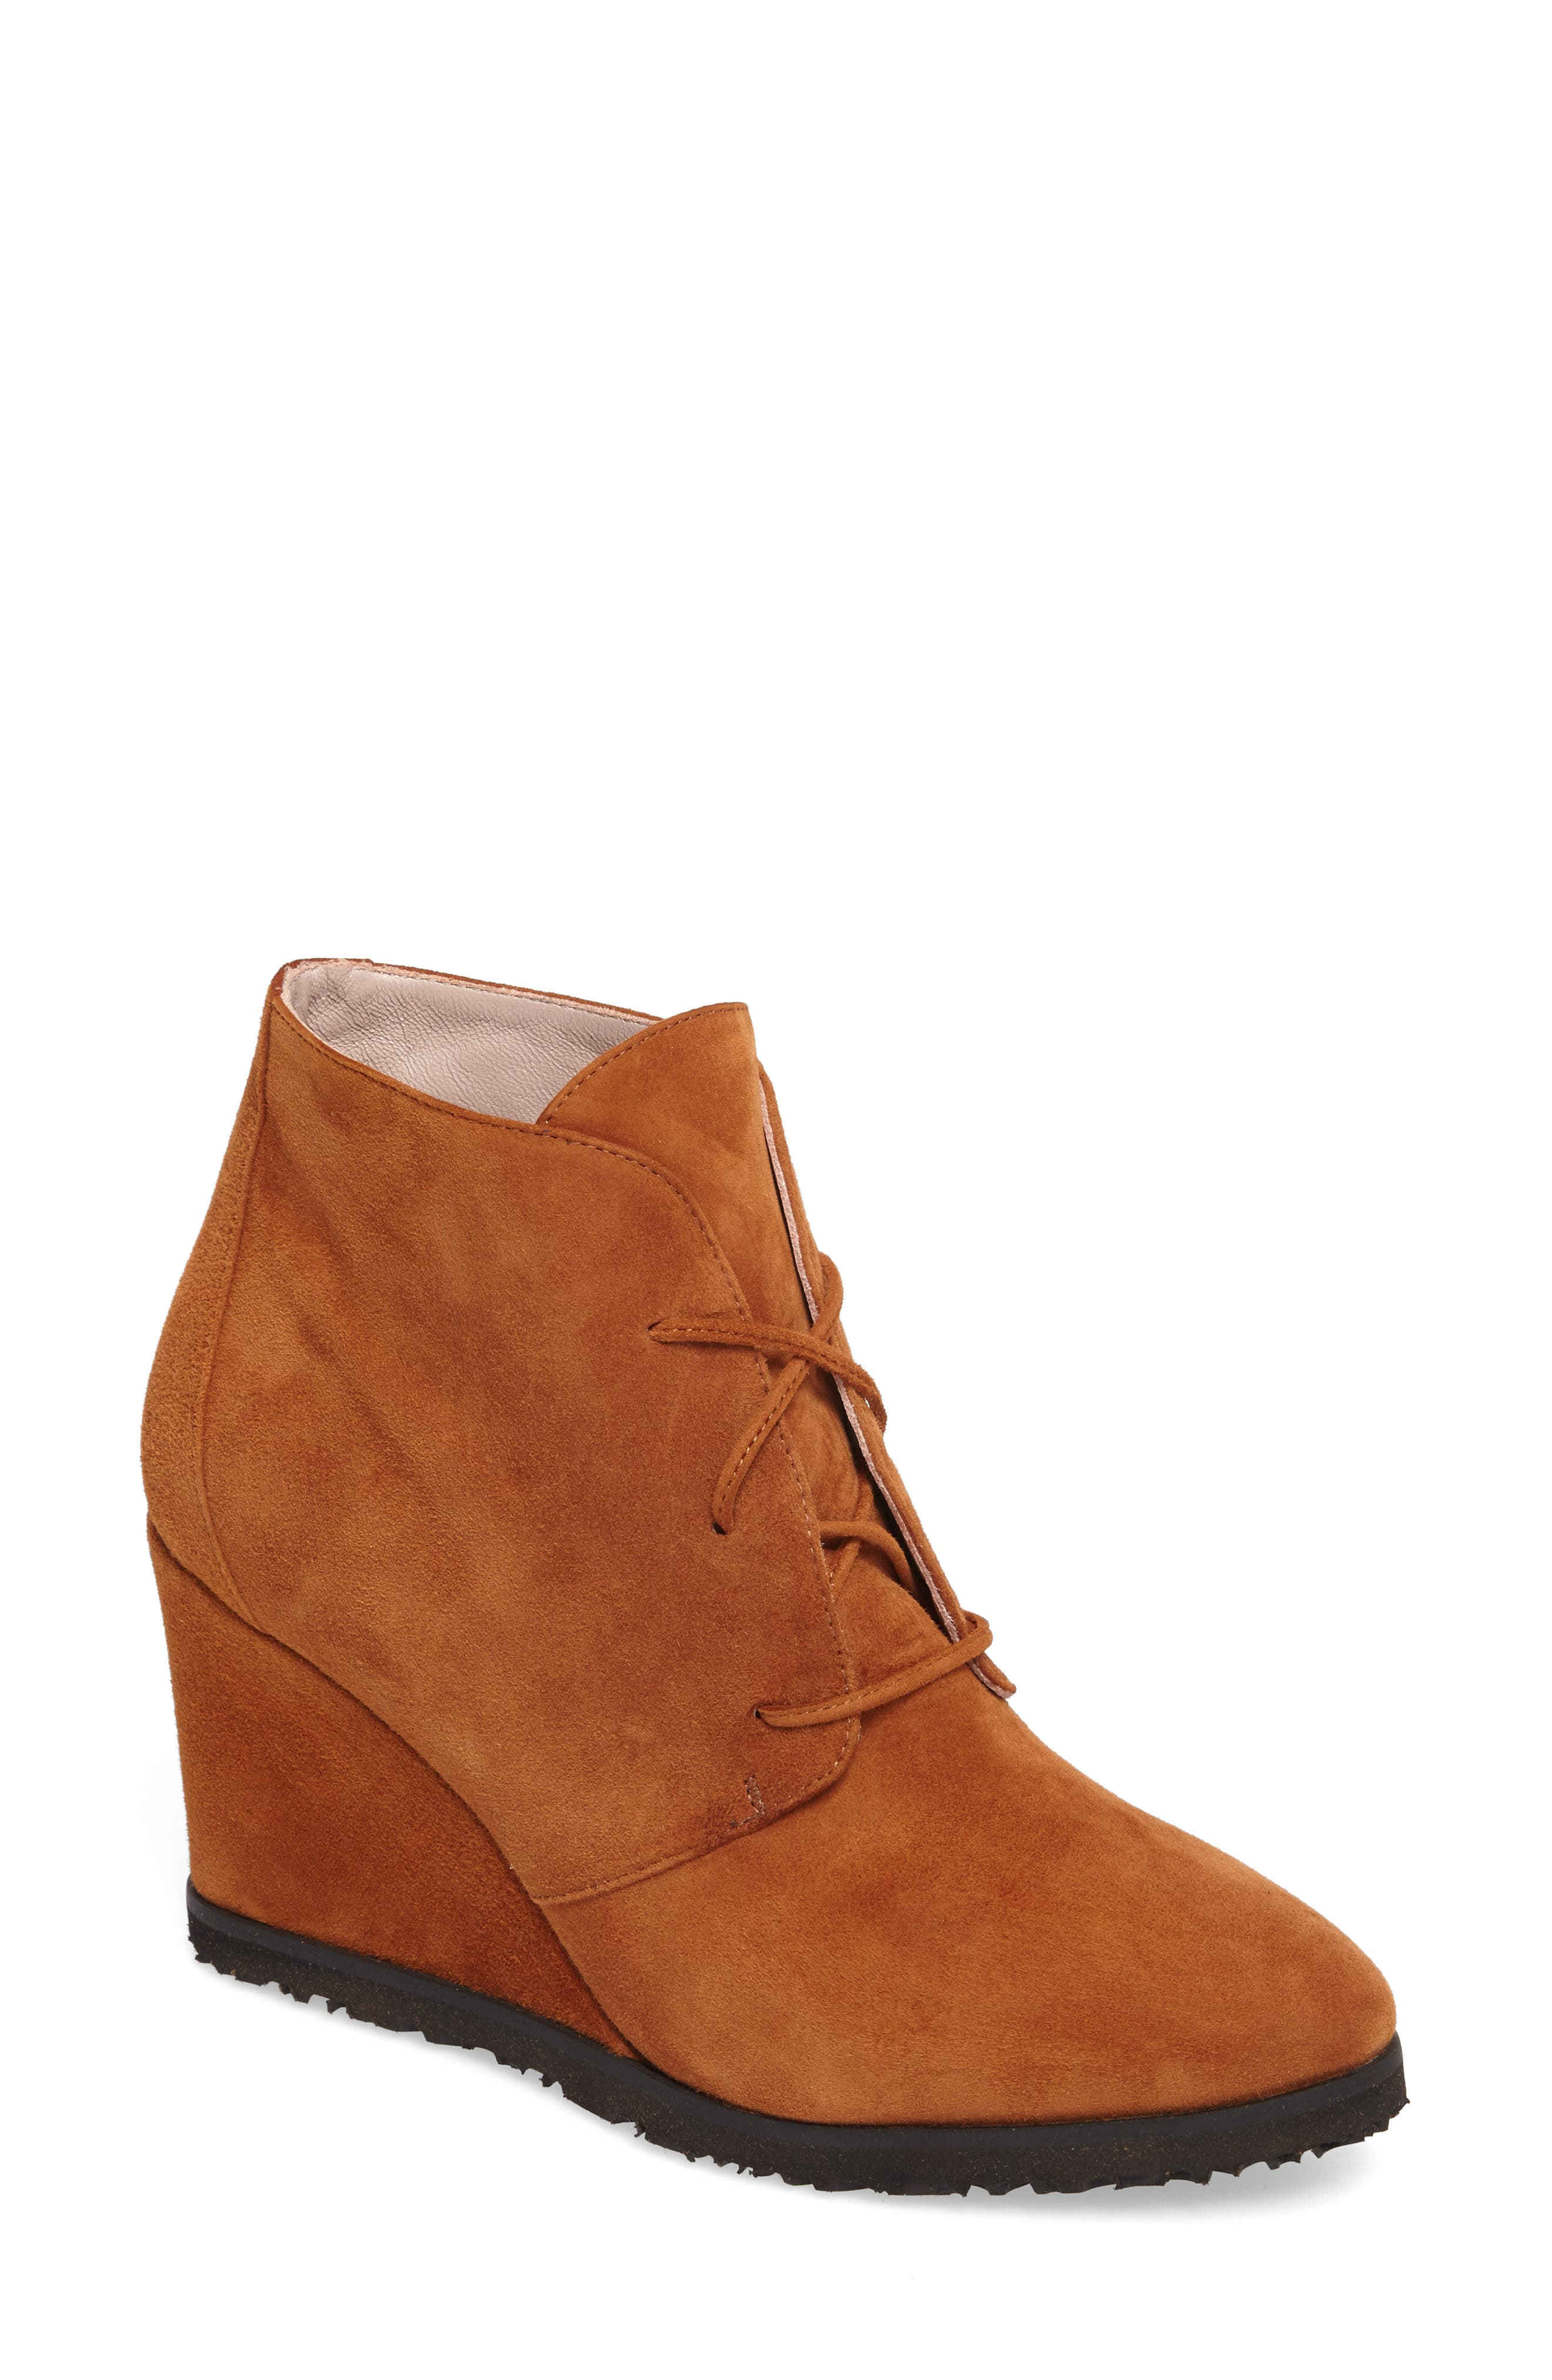 Alternate Image 1 Selected - Taryn Rose Marta Wedge Bootie (Women)